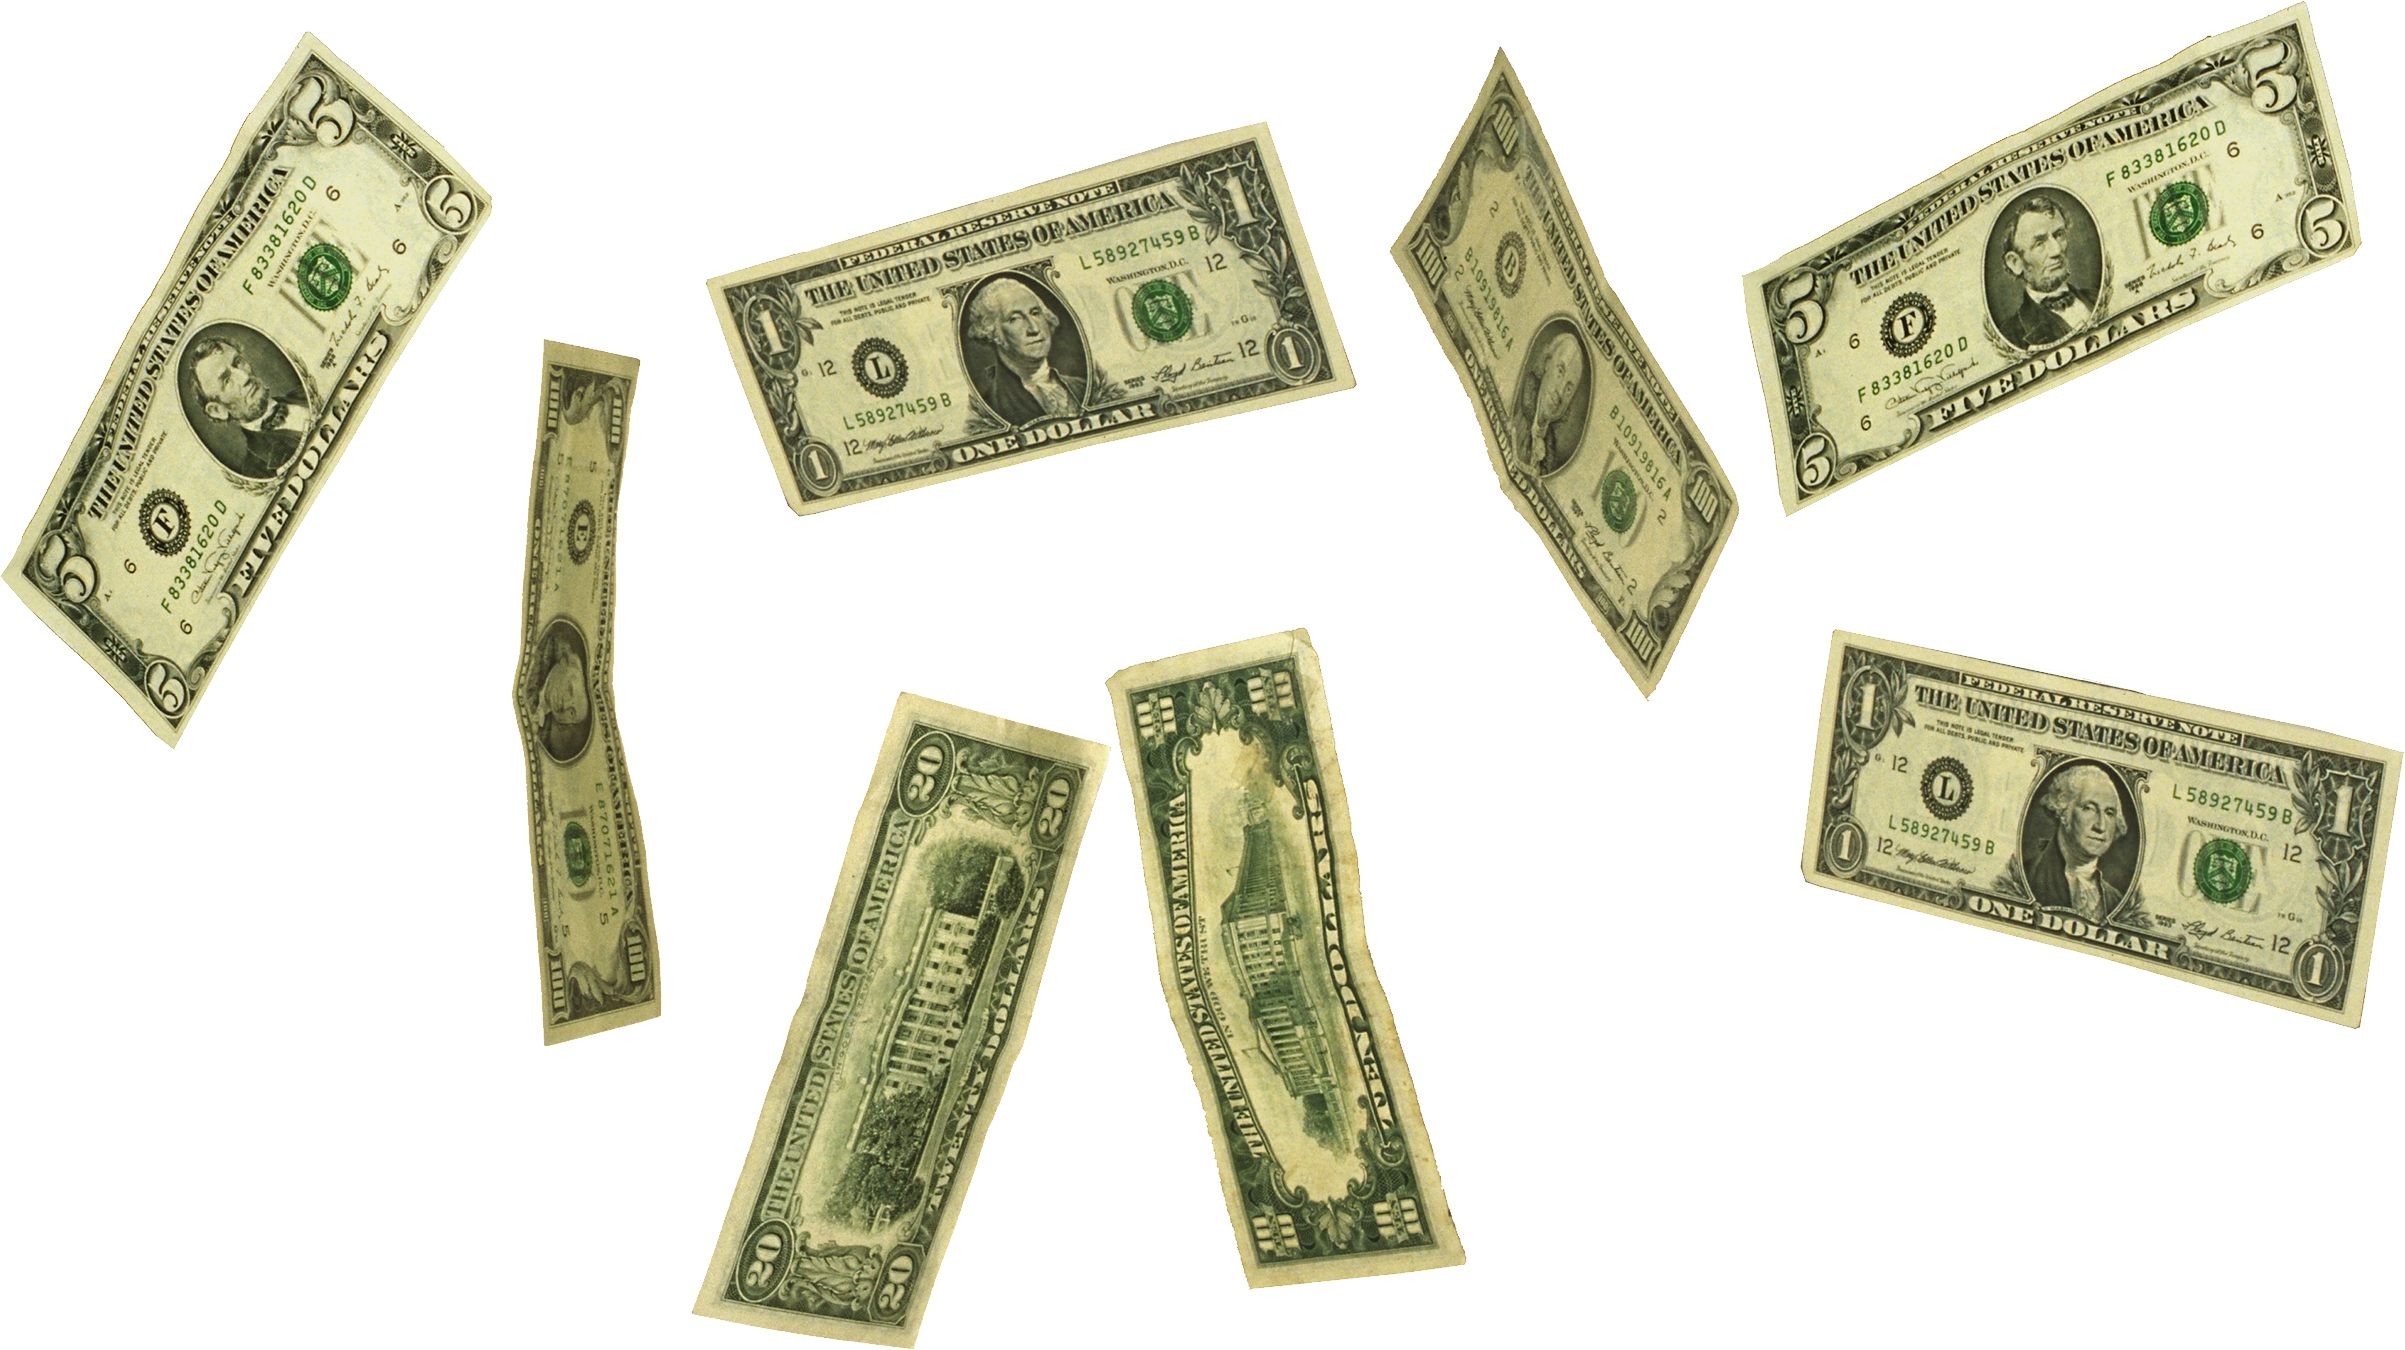 Money clipart flying picture free stock Falling money PNG images free download picture free stock